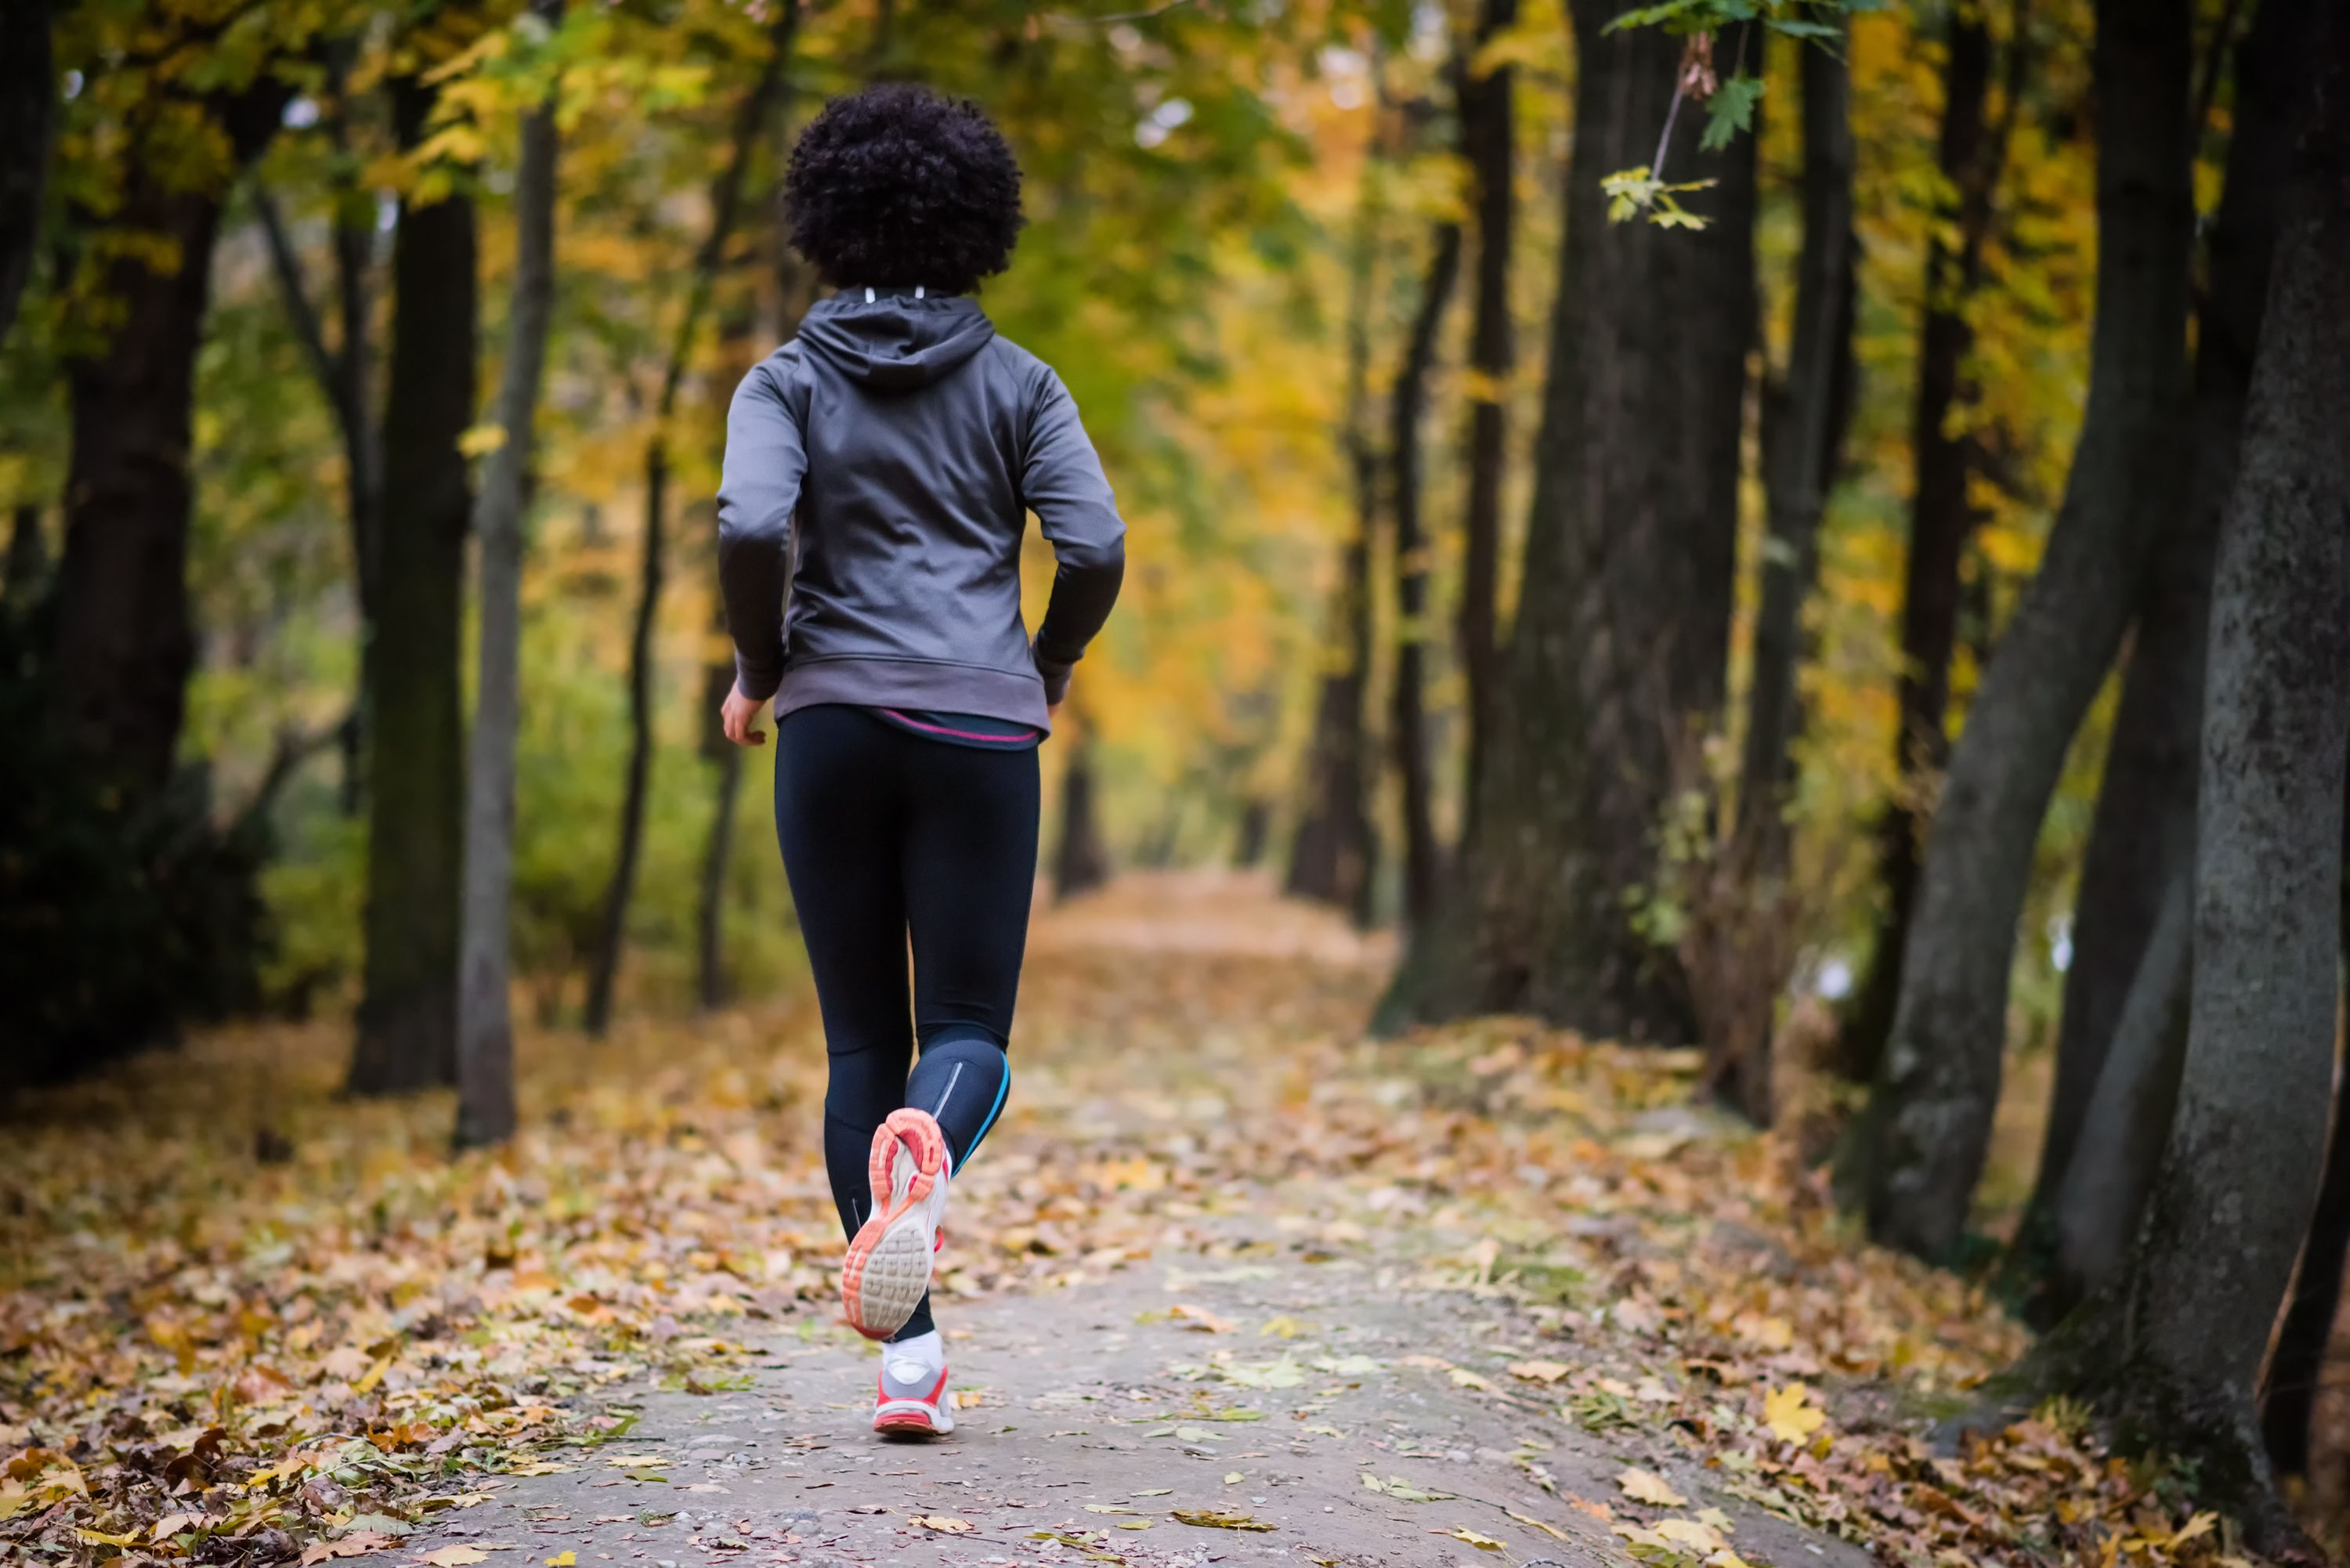 Runners found inspiration in local areas during lockdown, Ordnance Survey data suggests